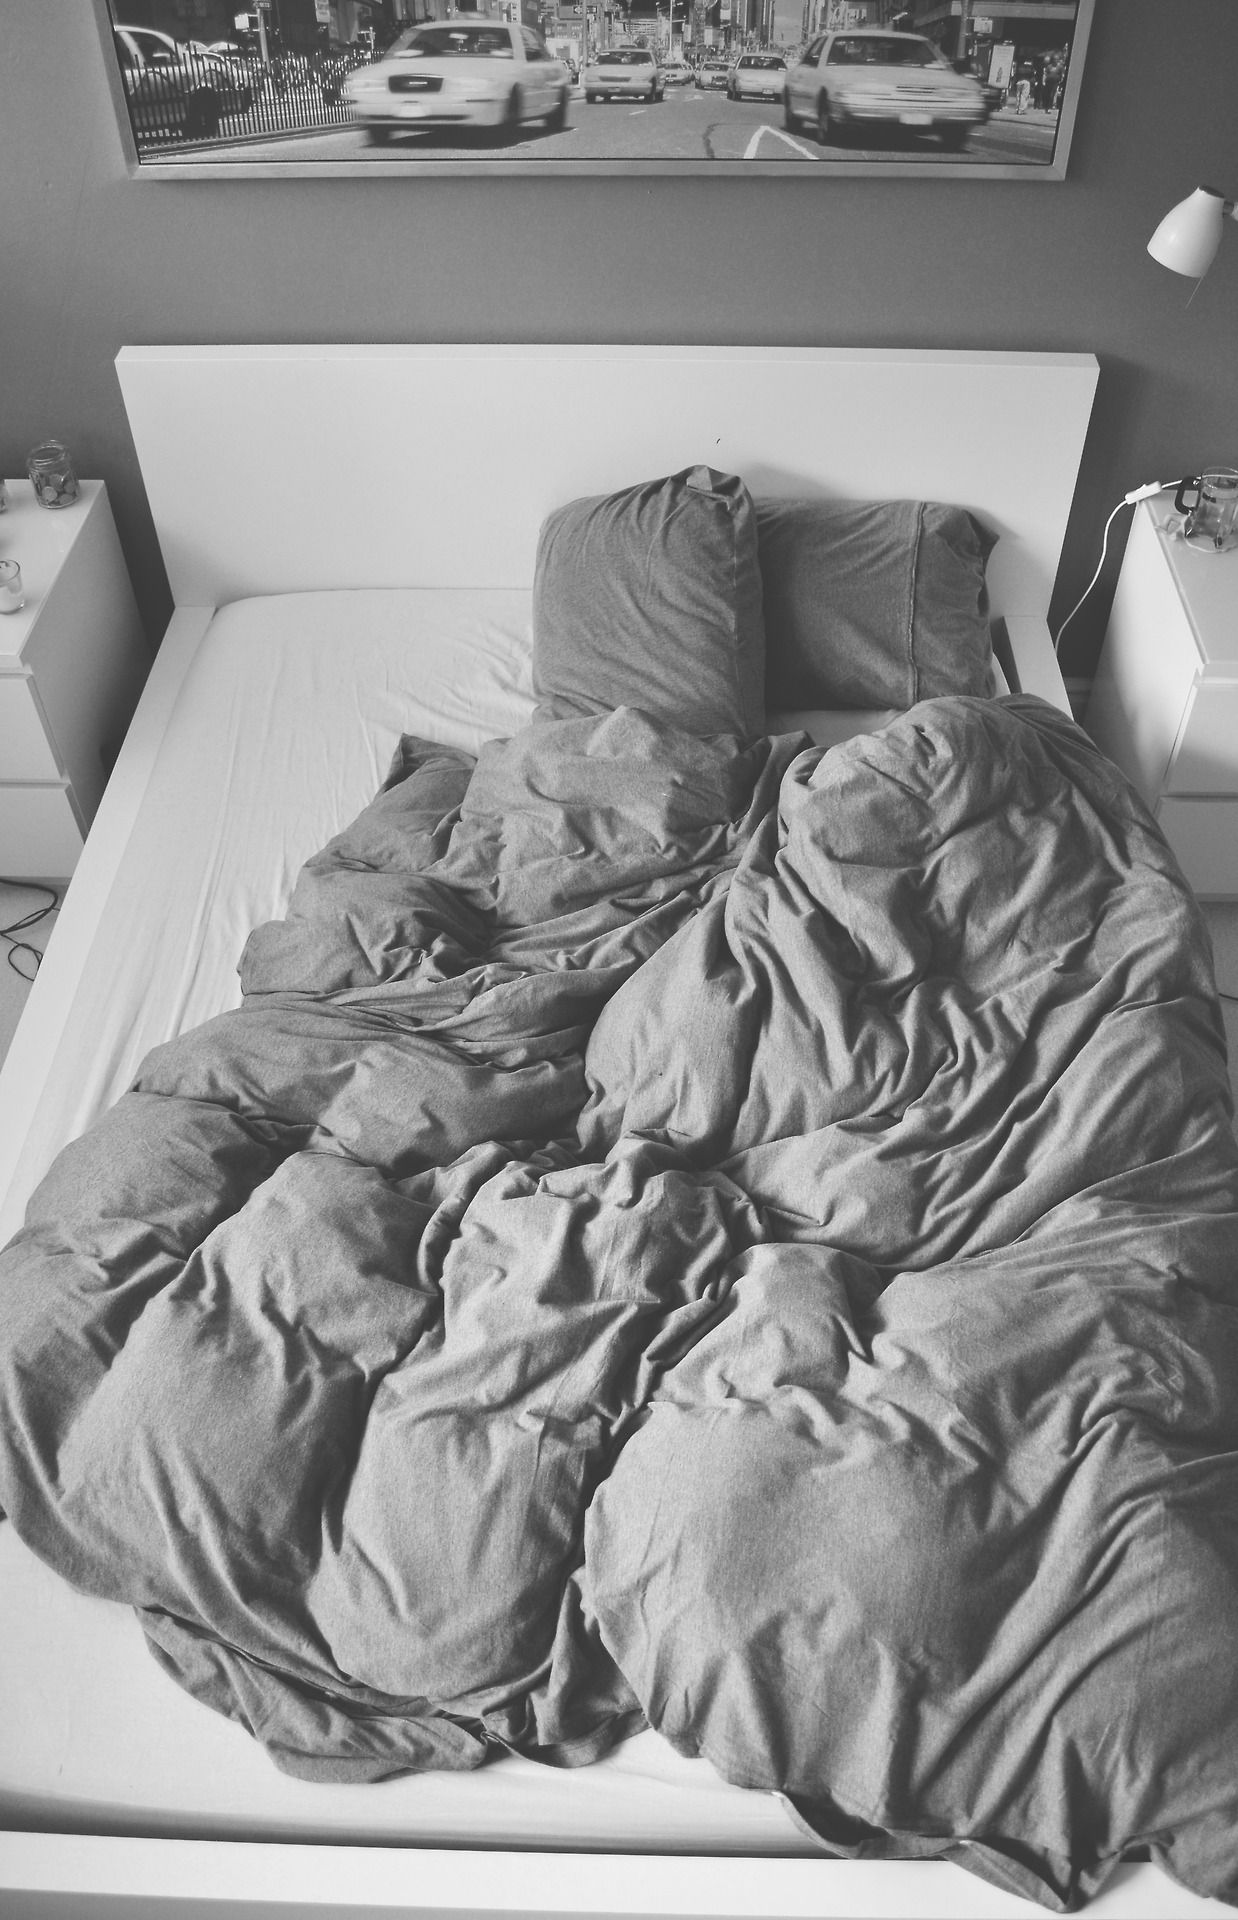 Morning Bed Photography By Ben Walker Tumblr Com Comfy Bed Comfortable Bedroom Bed